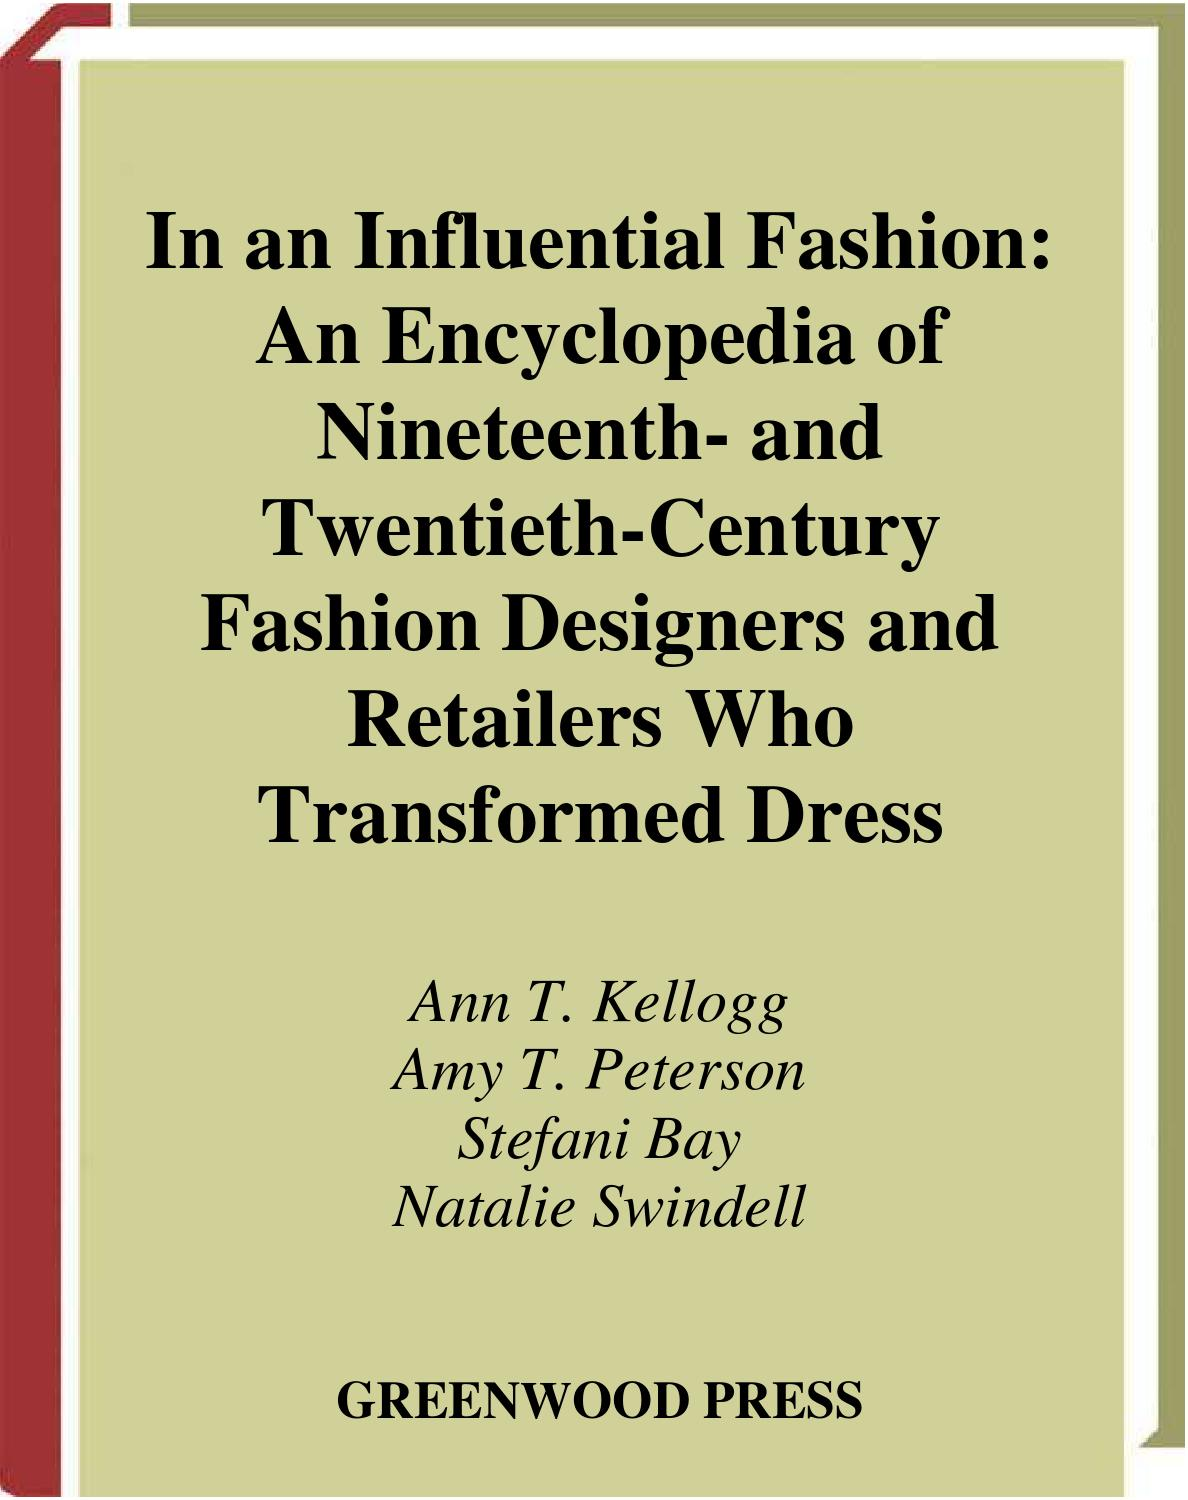 new styles authentic excellent quality Encyclopedia of 19th &20th century fashion designers & retailers ...